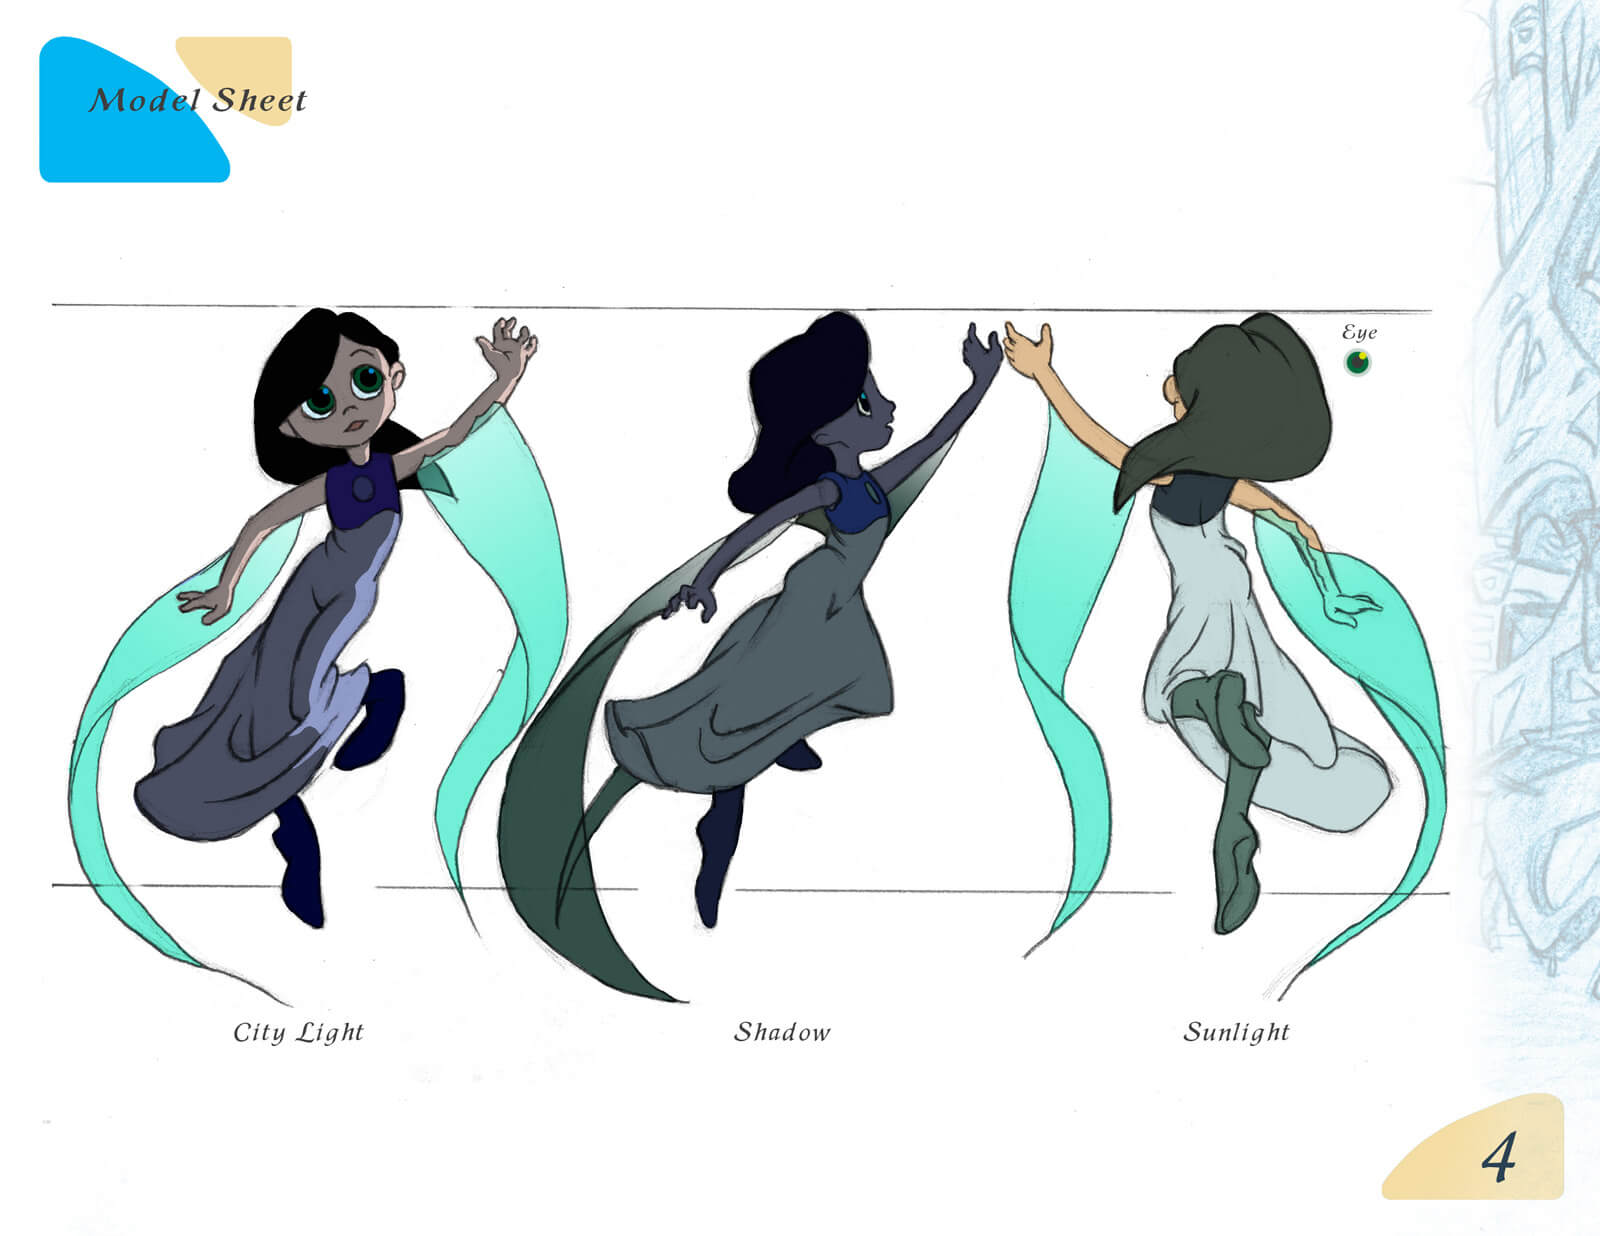 Model sheet depicting 2D drawings of the young protagonist of Beneath the Night Sea in various lighting schemes